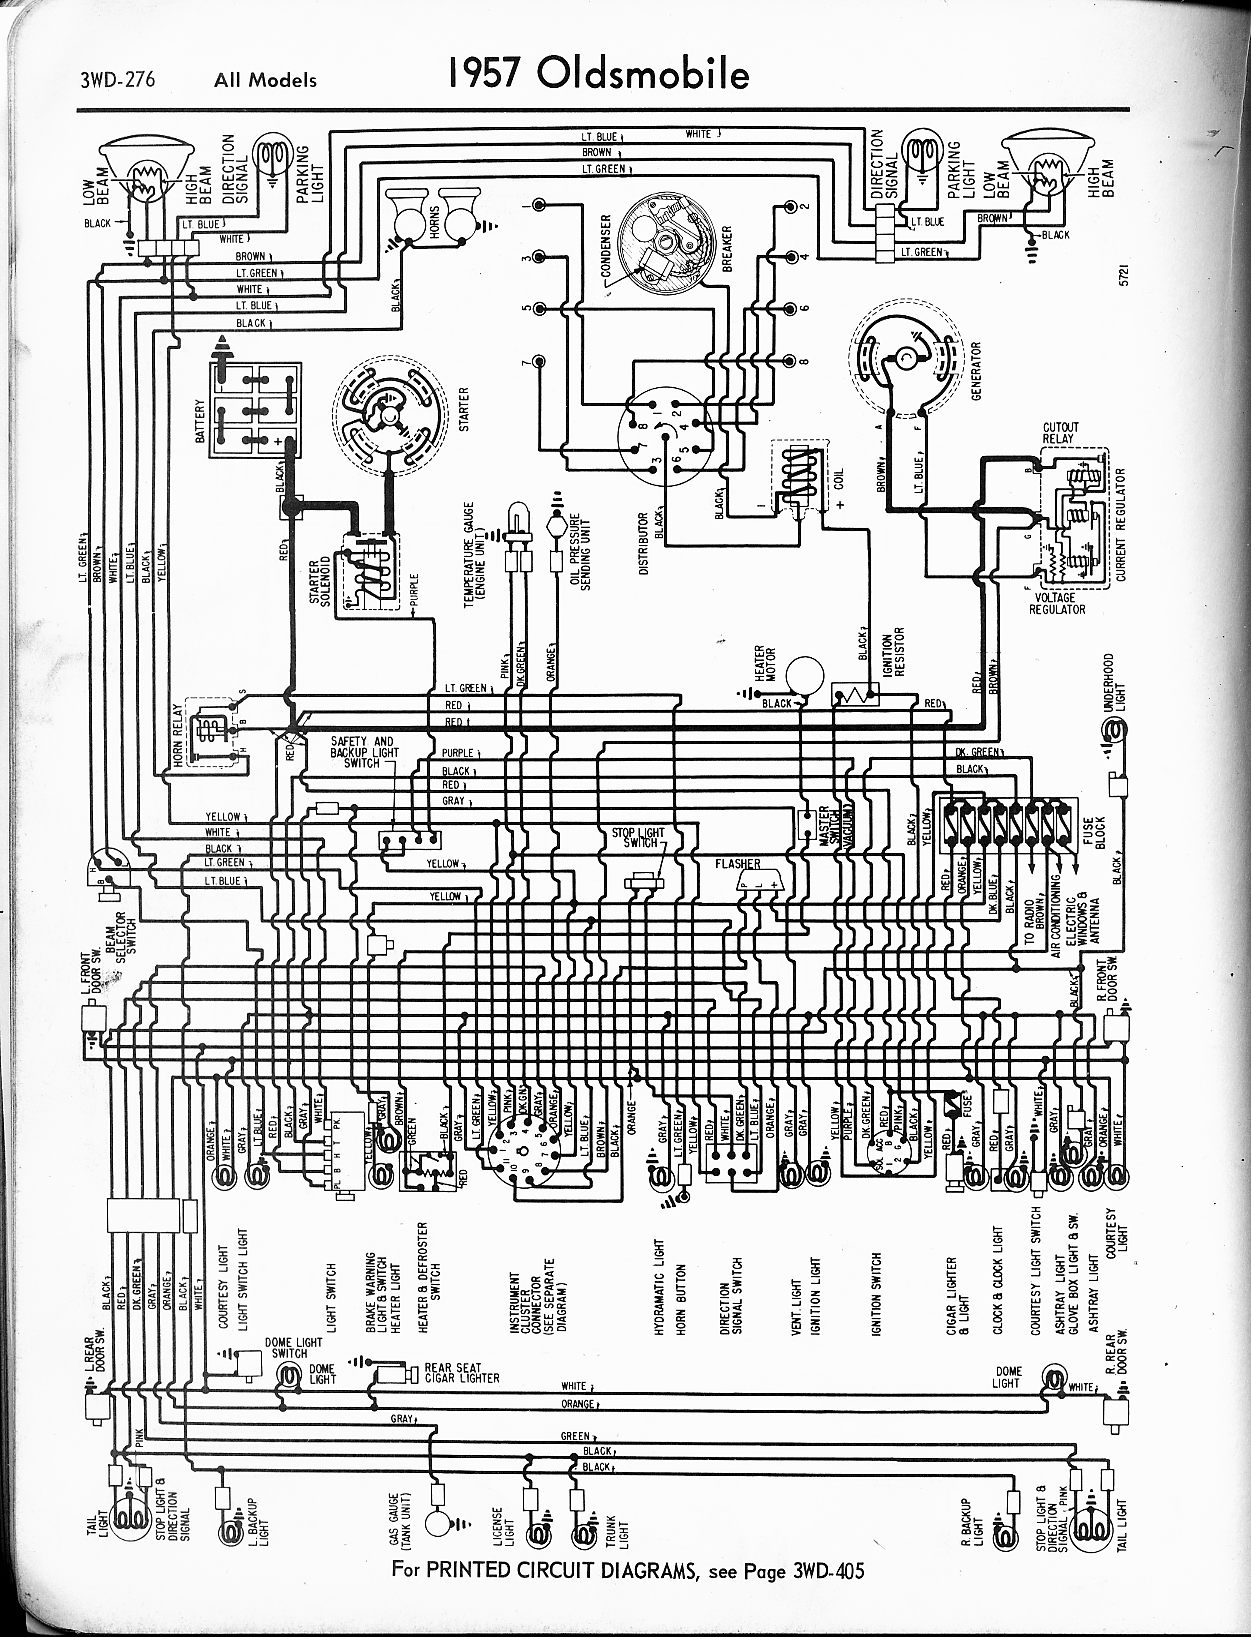 oldsmobile wiring diagrams the old car manual project rh oldcarmanualproject com 2014 Tundra Power Window Circuit Diagram Universal Power Window Wiring Diagram